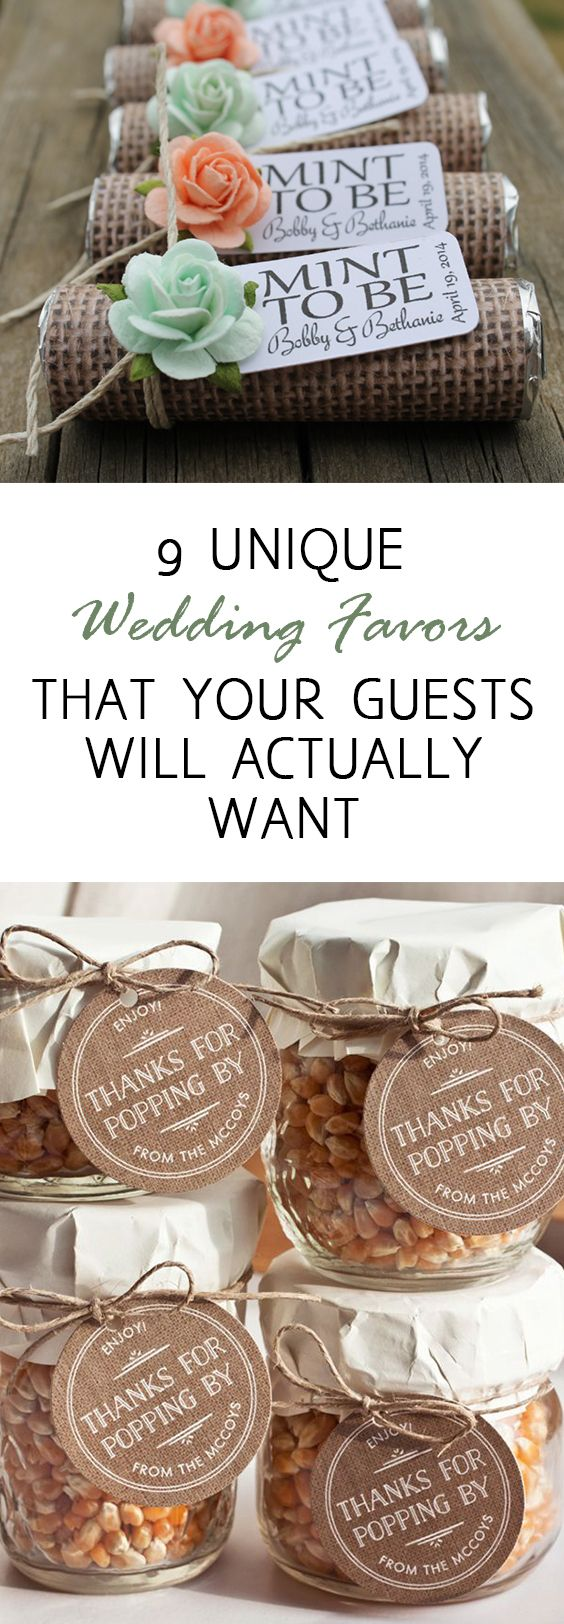 Love The Thanks For Popping By Ones Wedding Favors Favor Ideas DIY Frugal Schedules Popular Pin